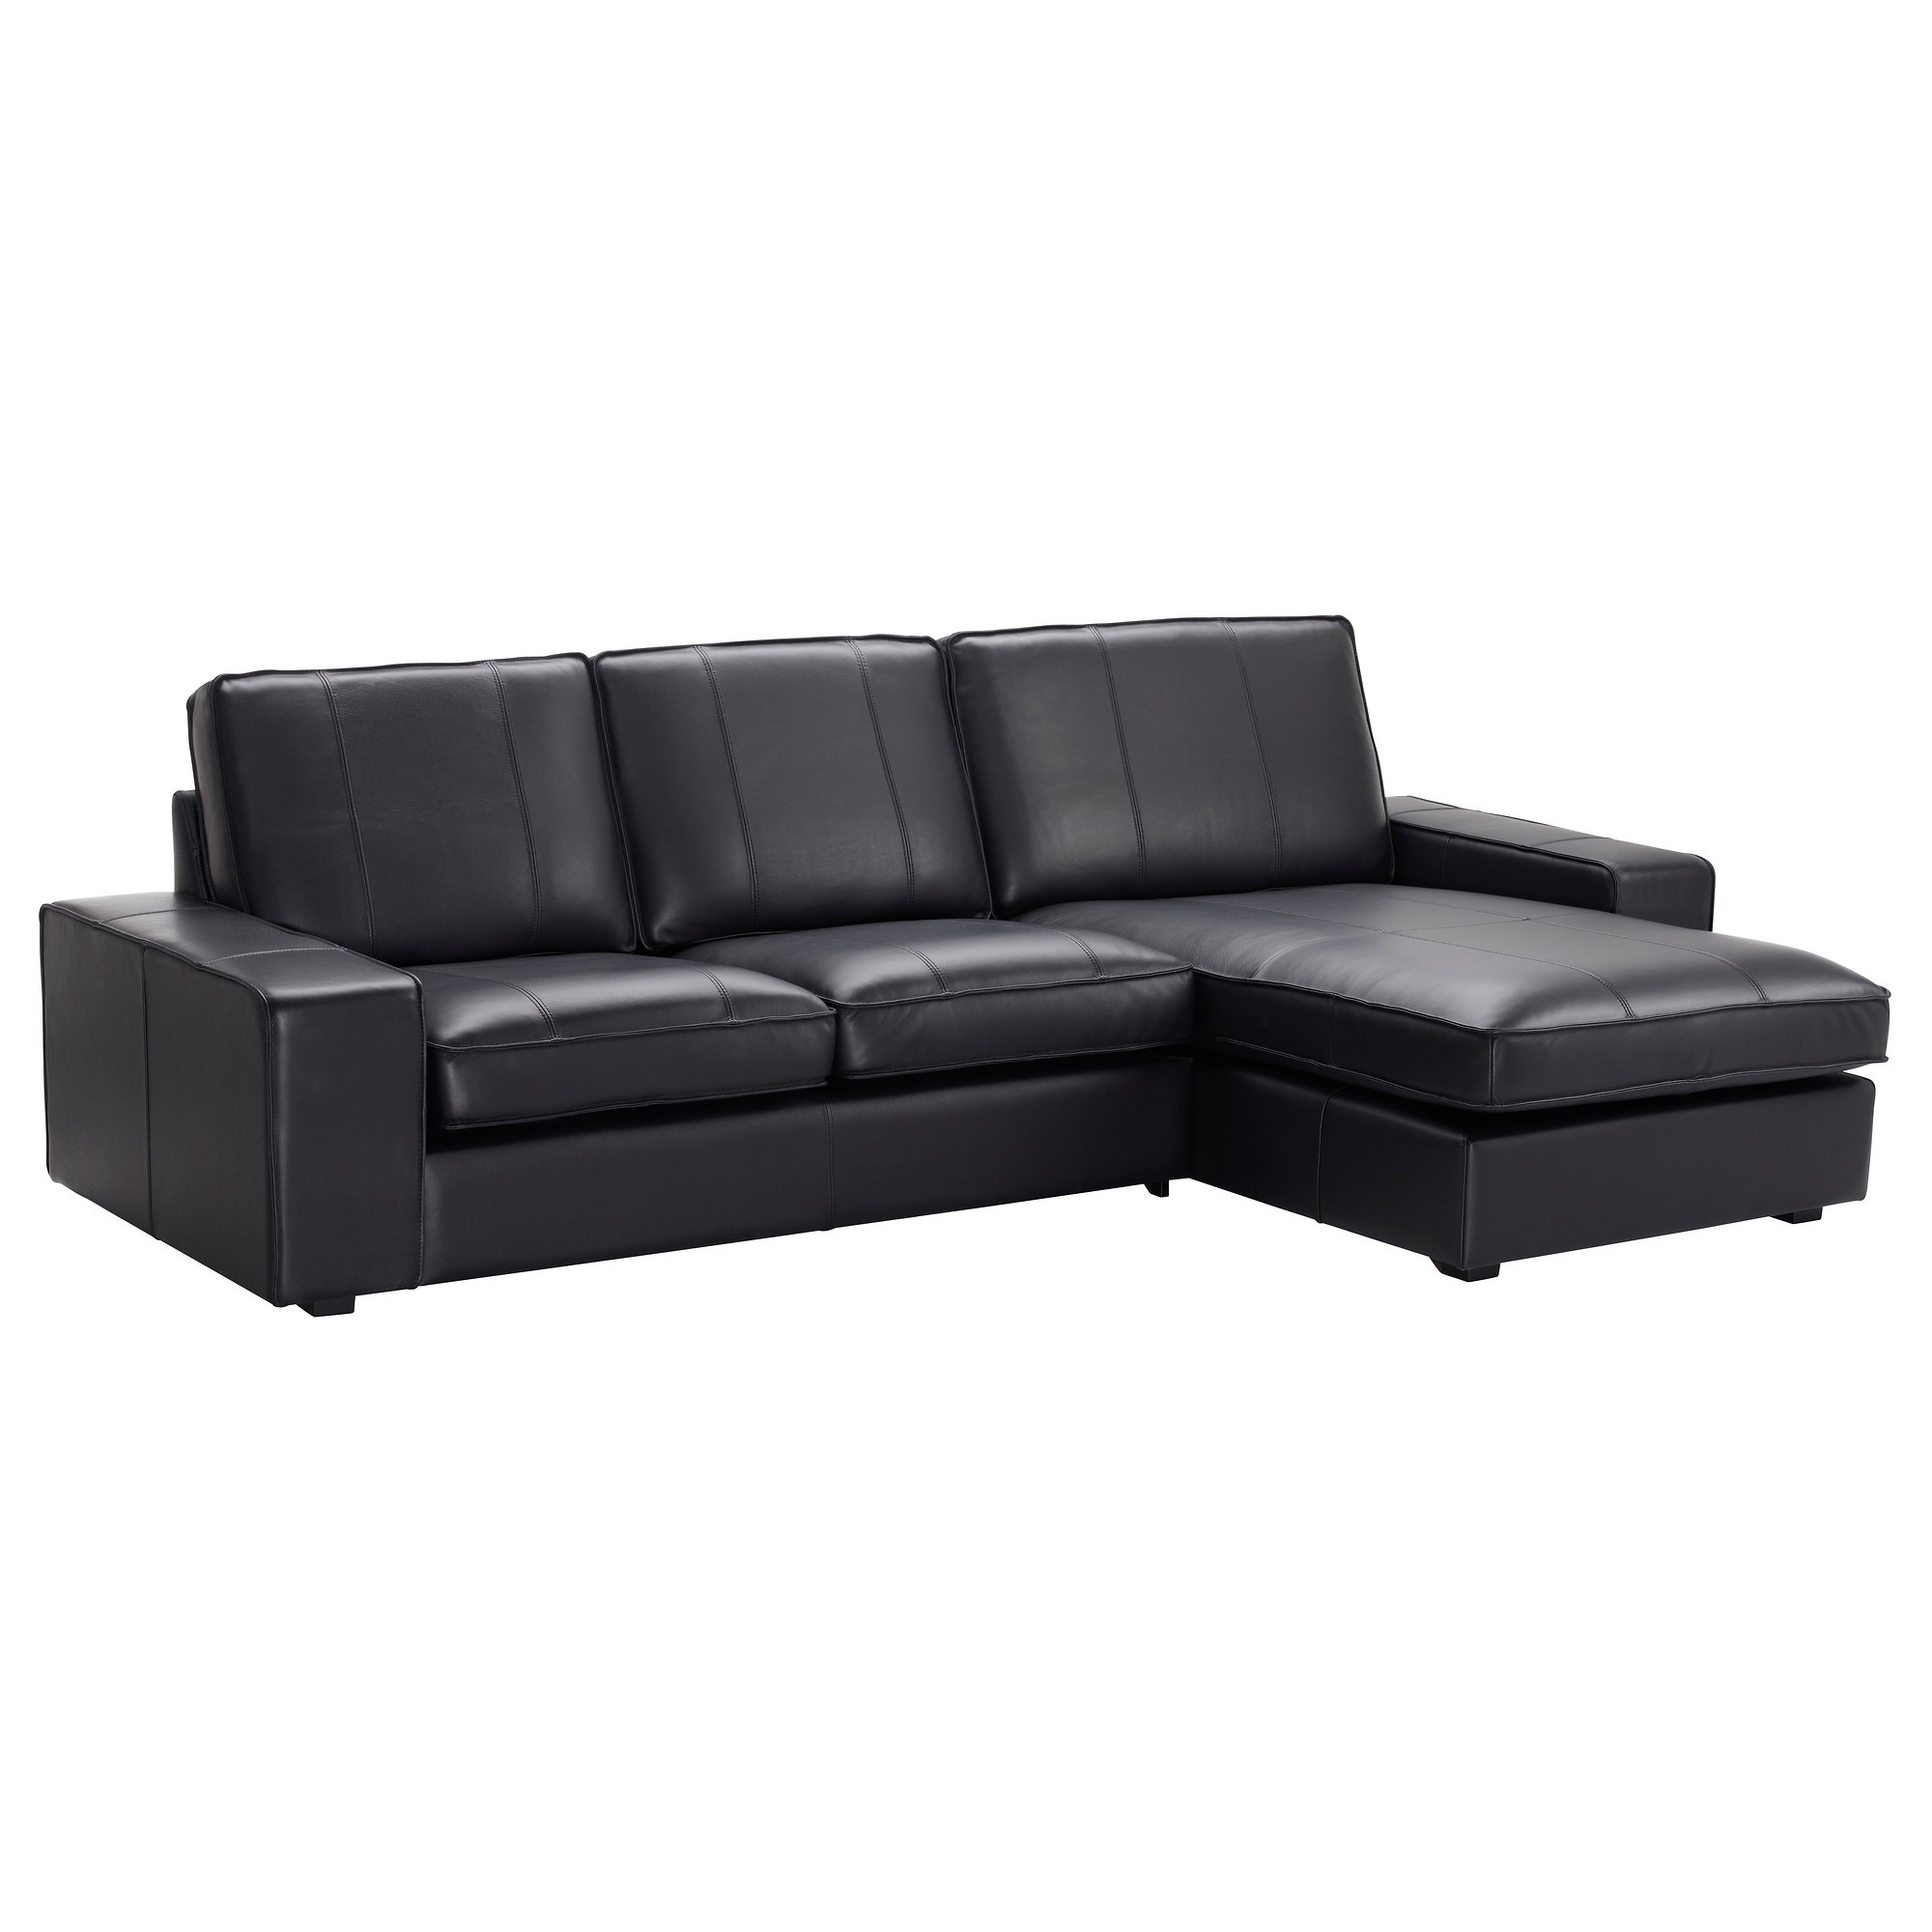 Canape cuir ikea 2 places canap id es de d coration for Canape 2 places ikea